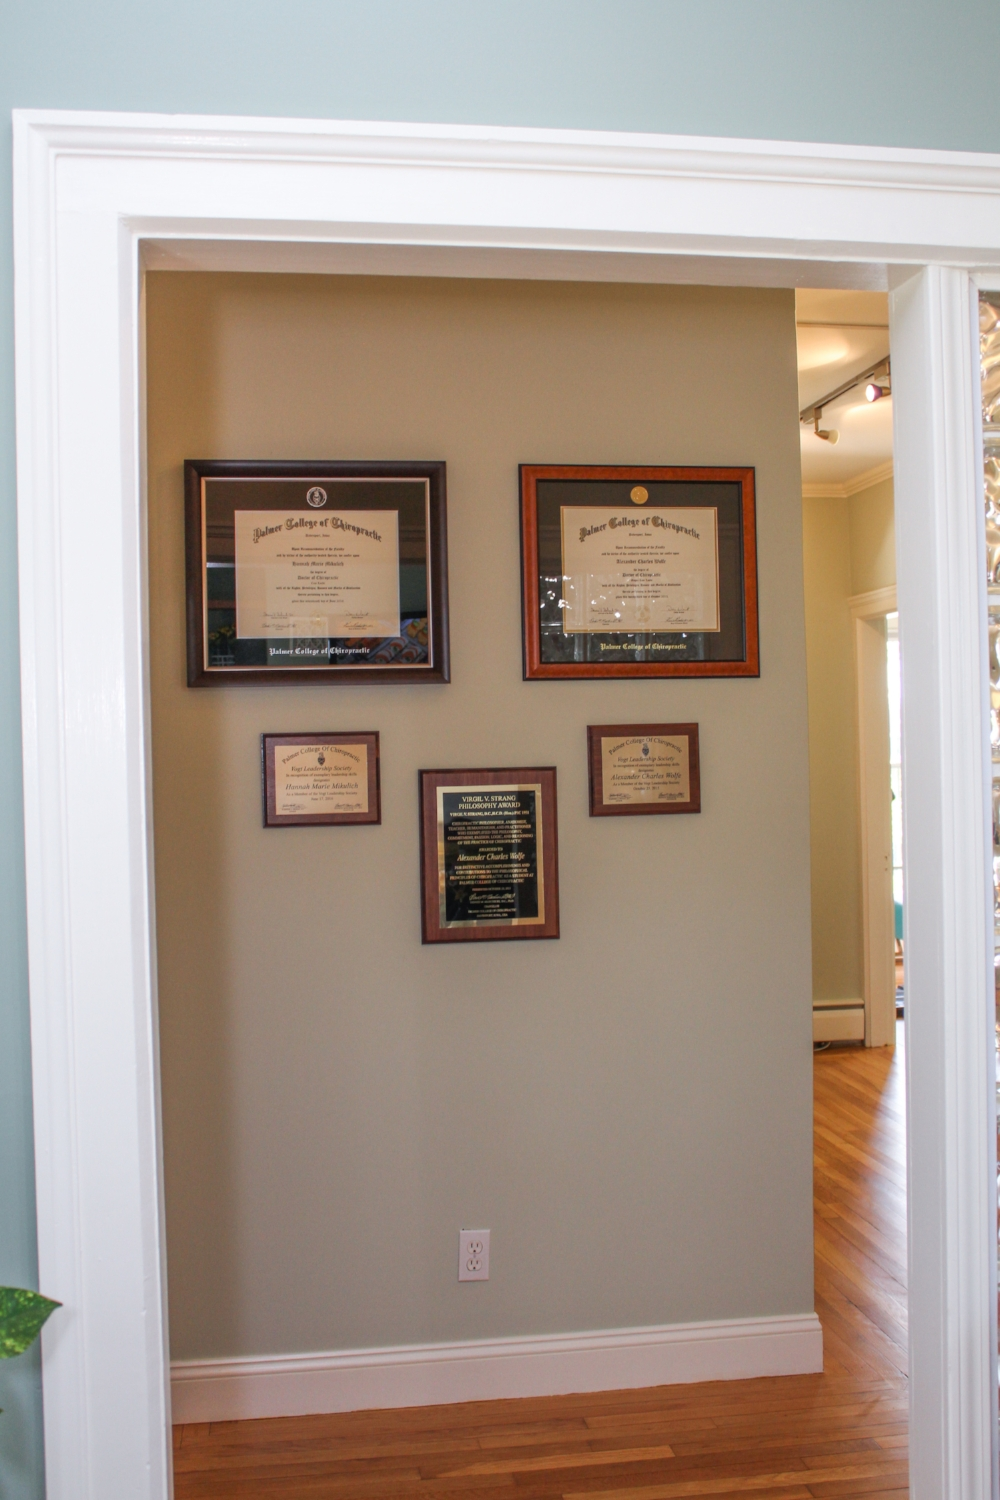 Wolfe Family Chiropractic Metamora hallway leading to chiropractor